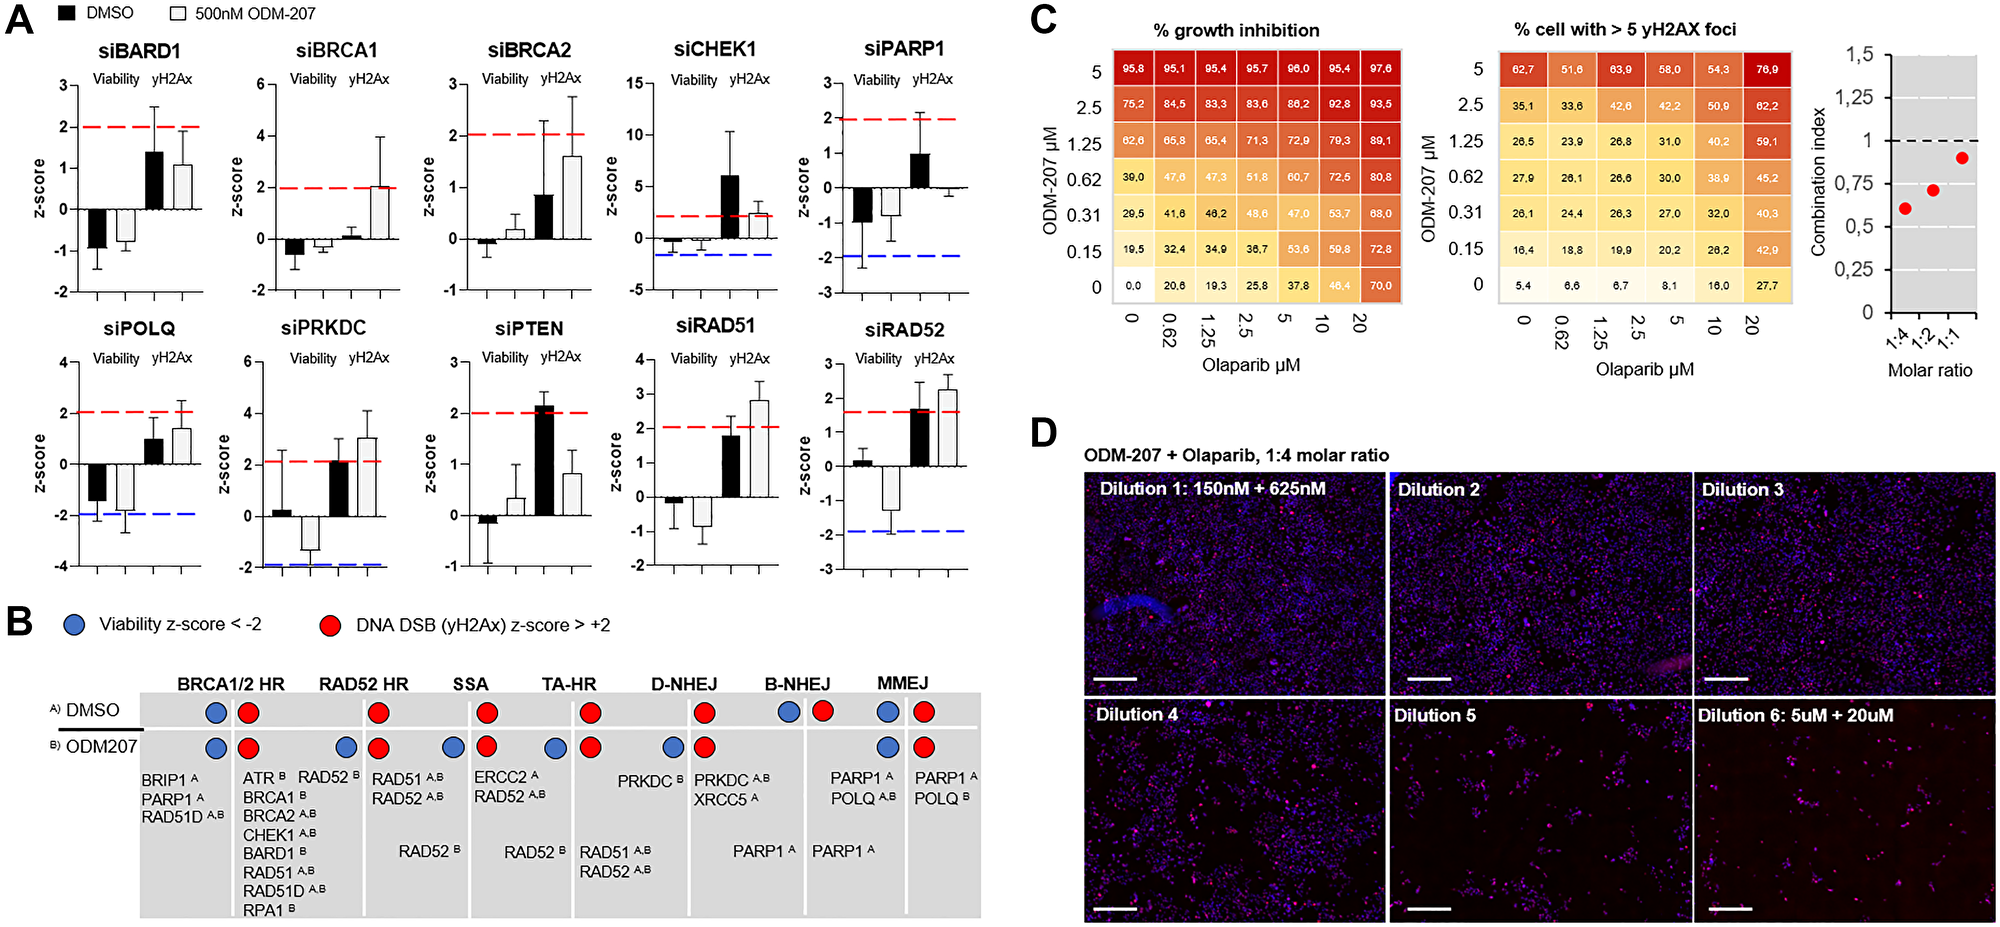 Analysis of efficacy of targeting different DNA repair pathways on PALB2 mutated CAC cells.